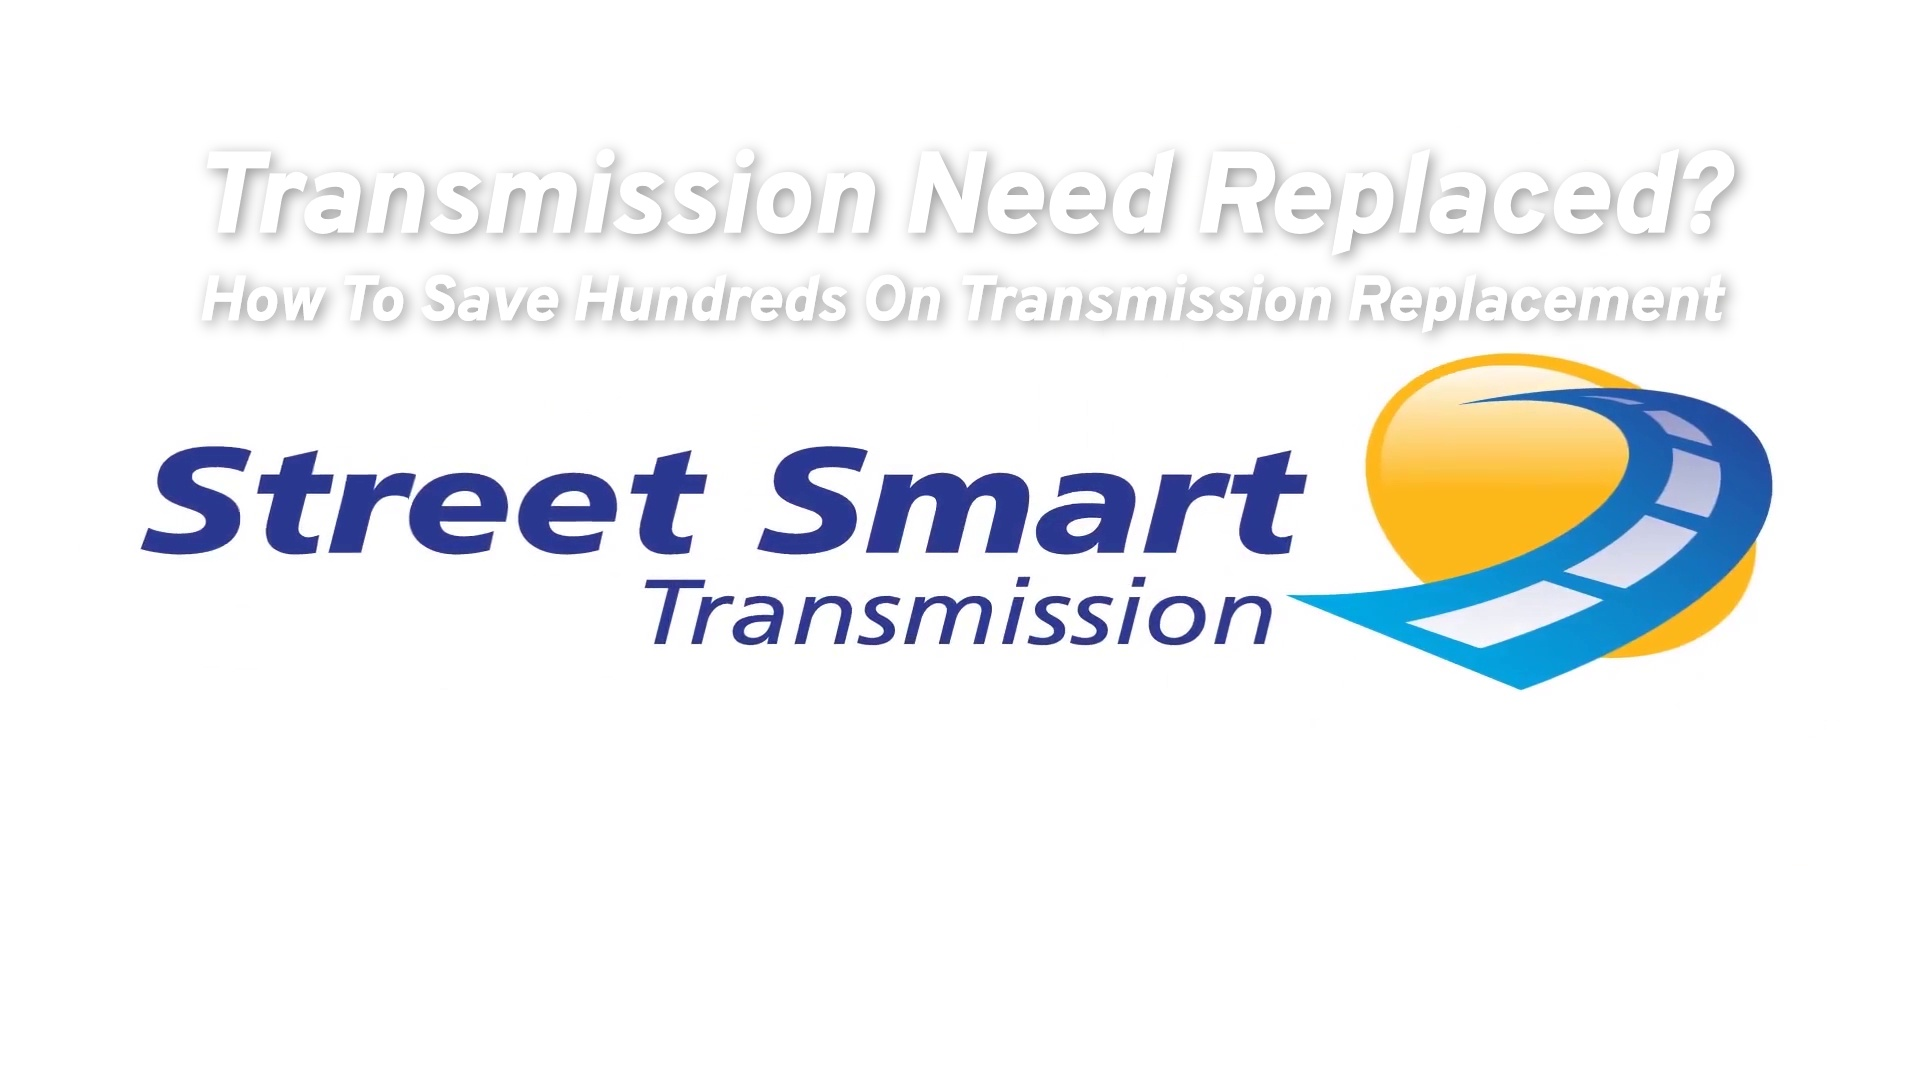 medium resolution of street smart transmission logo